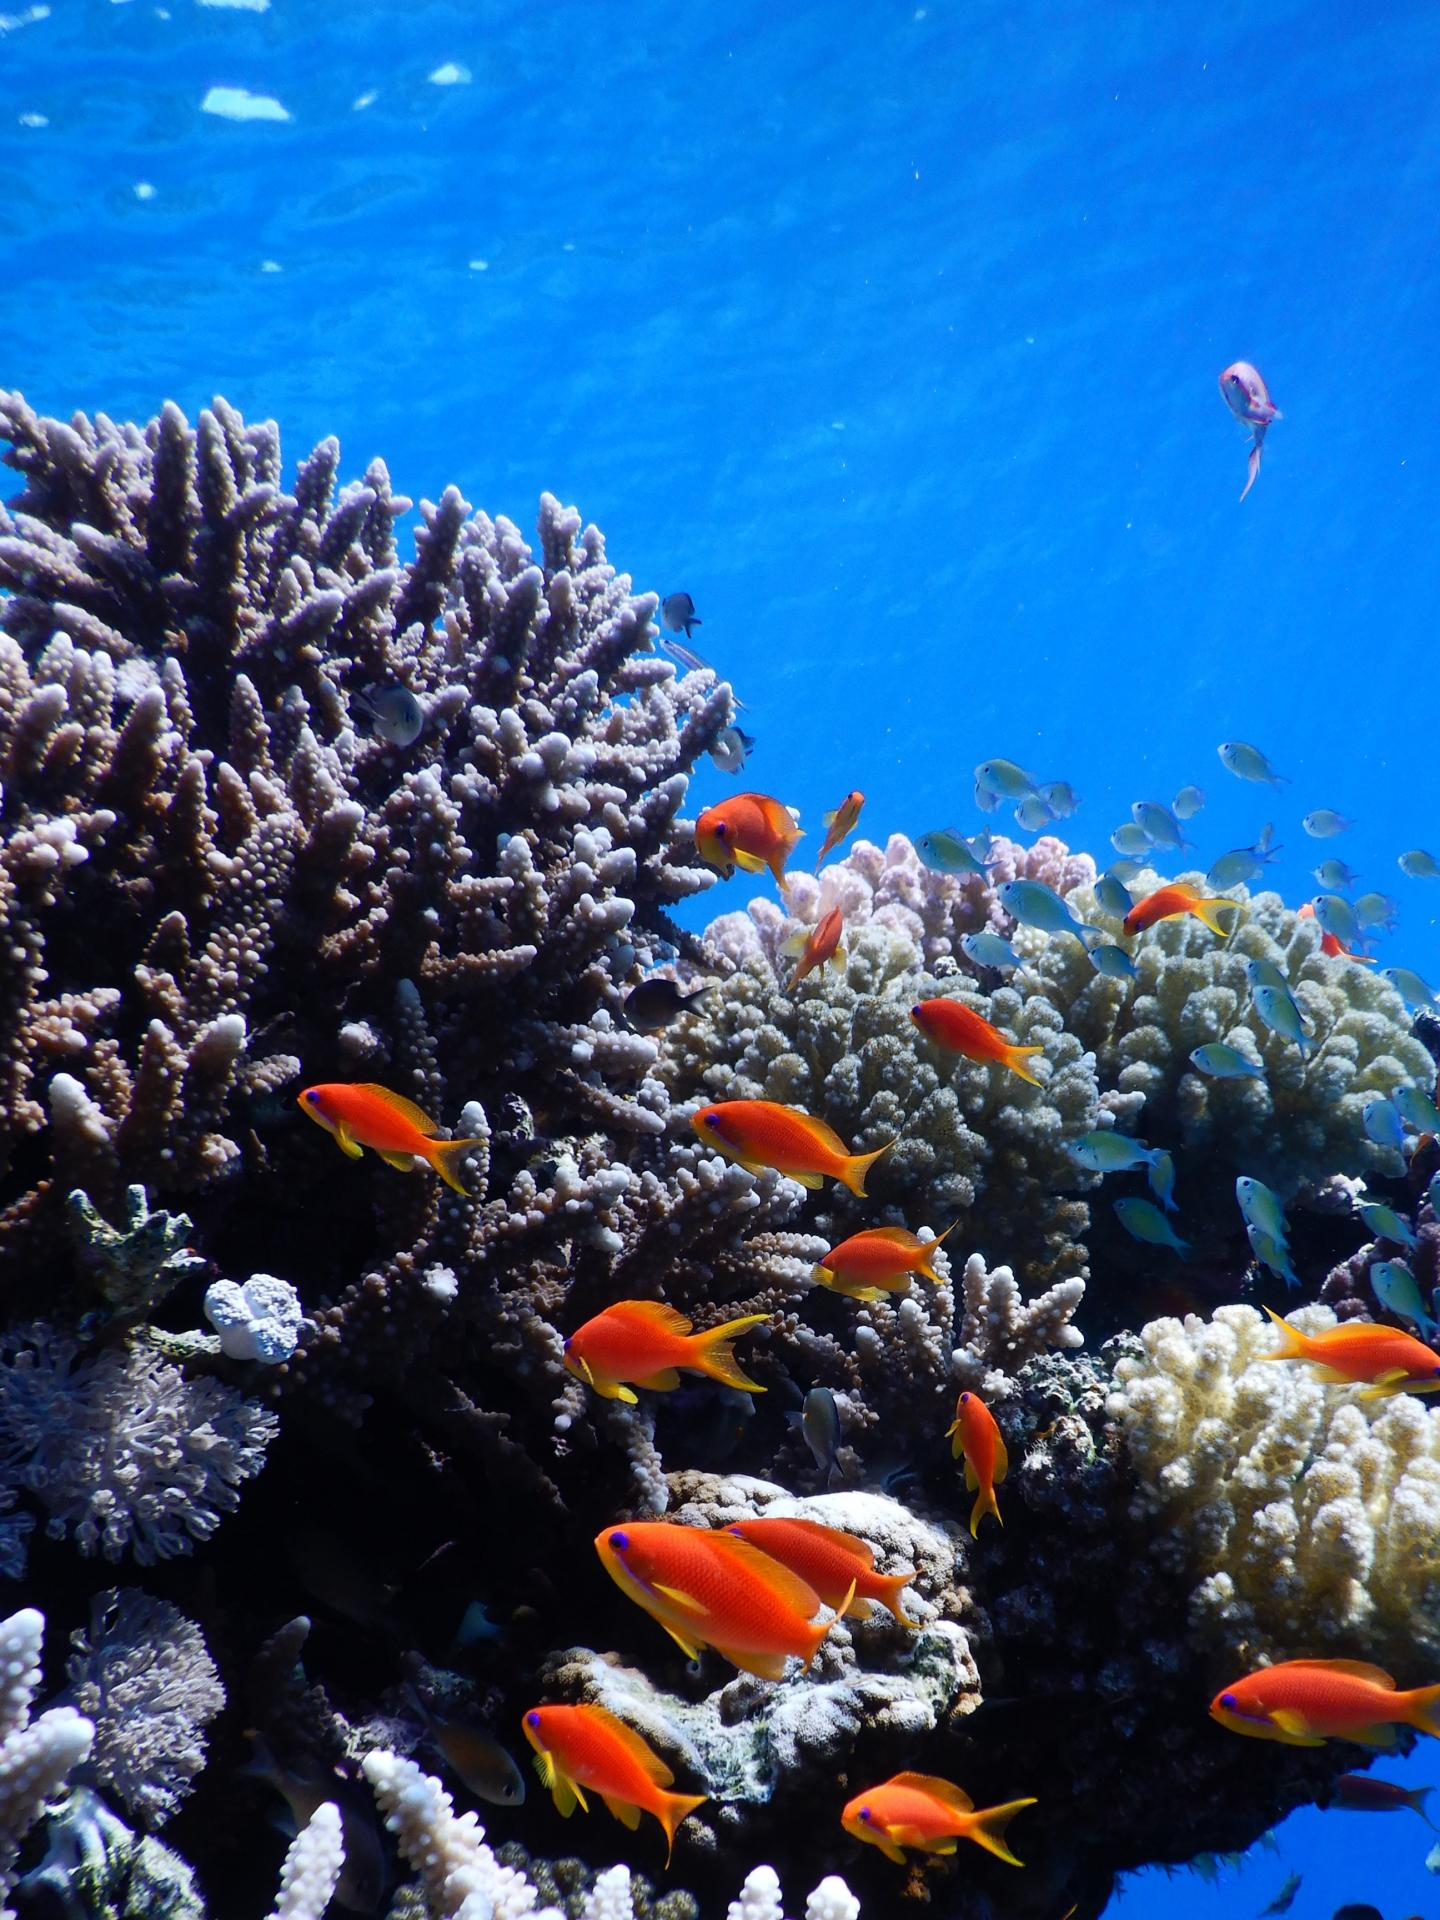 Research grants awarded to regional scientists studying the red sea's coral reef